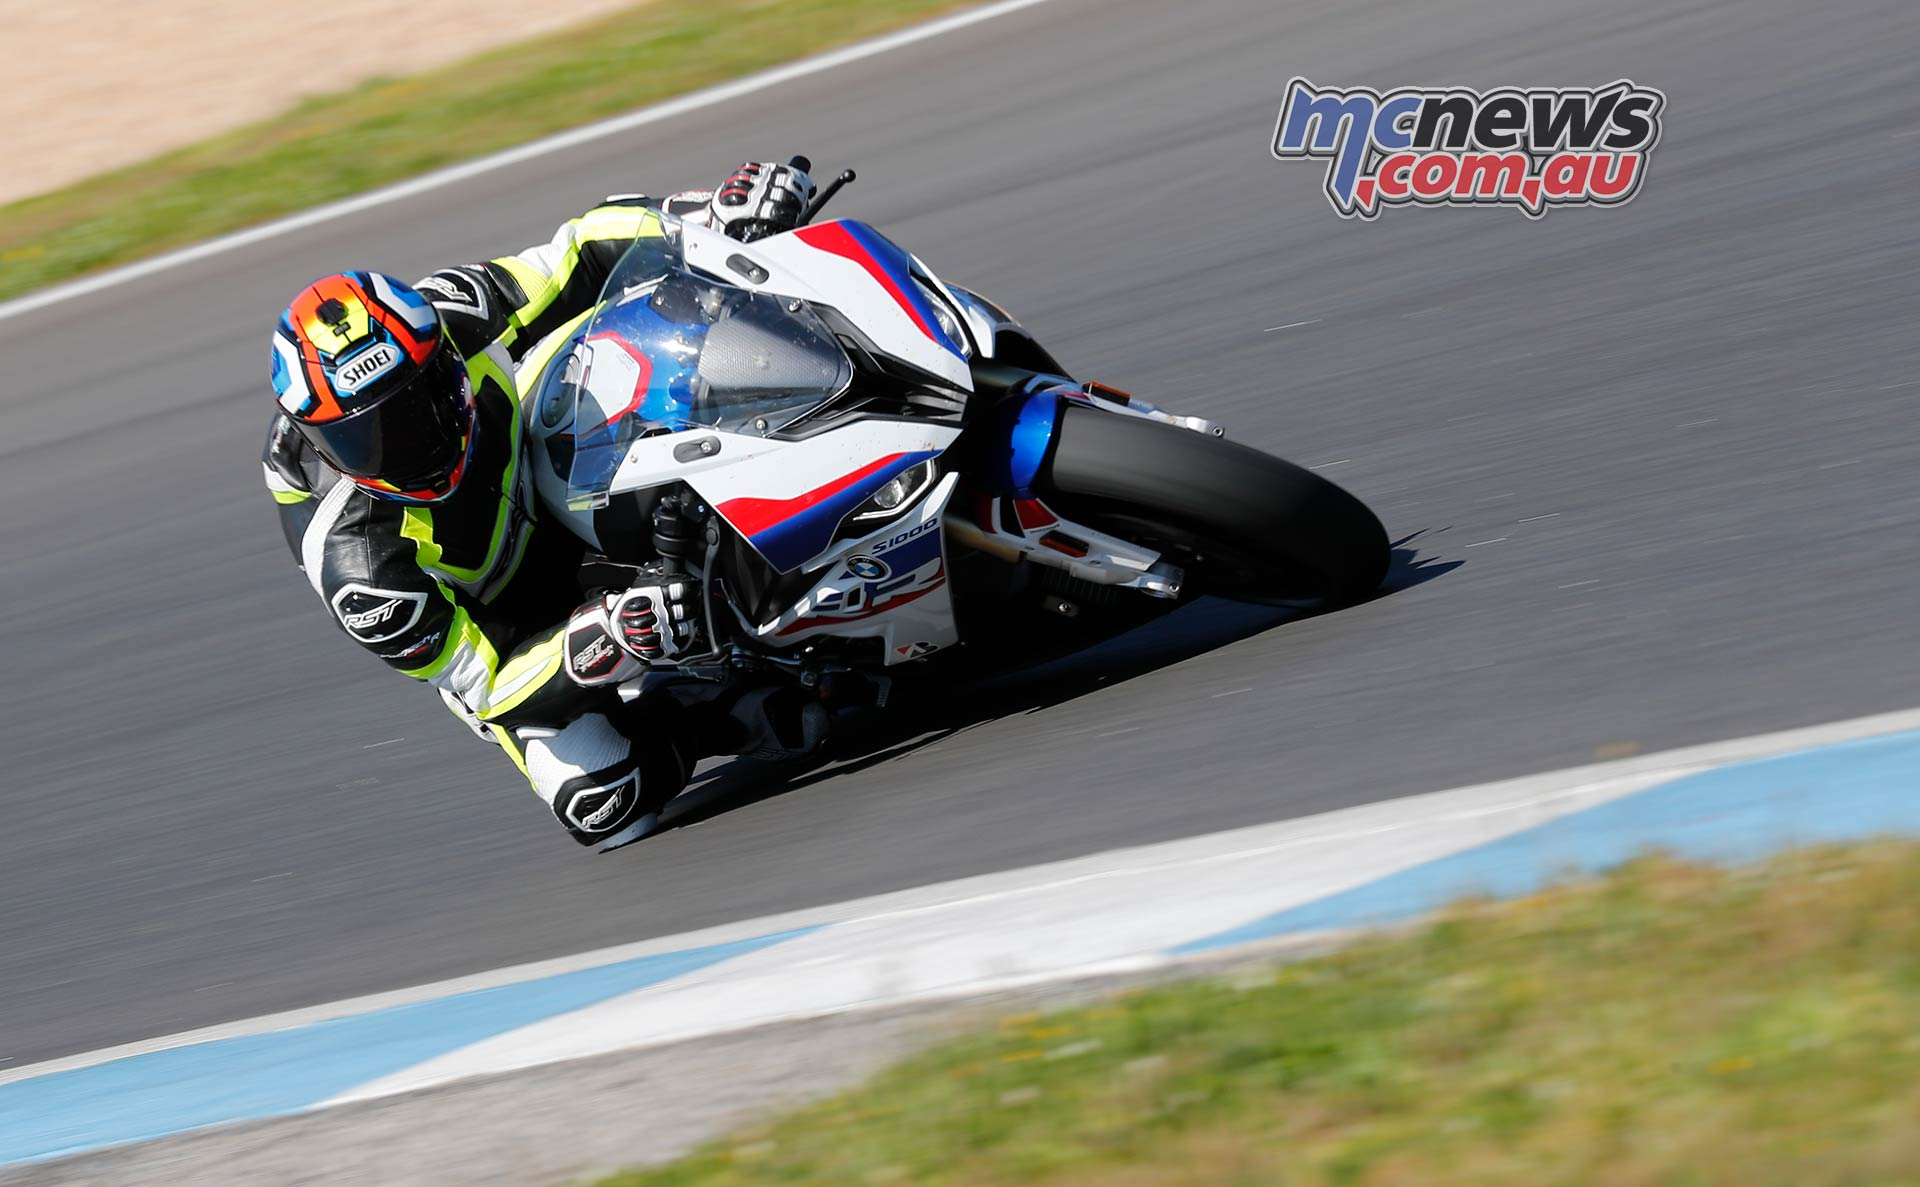 MCNews com au | Motorcycle News, Sport and Reviews | Page 23